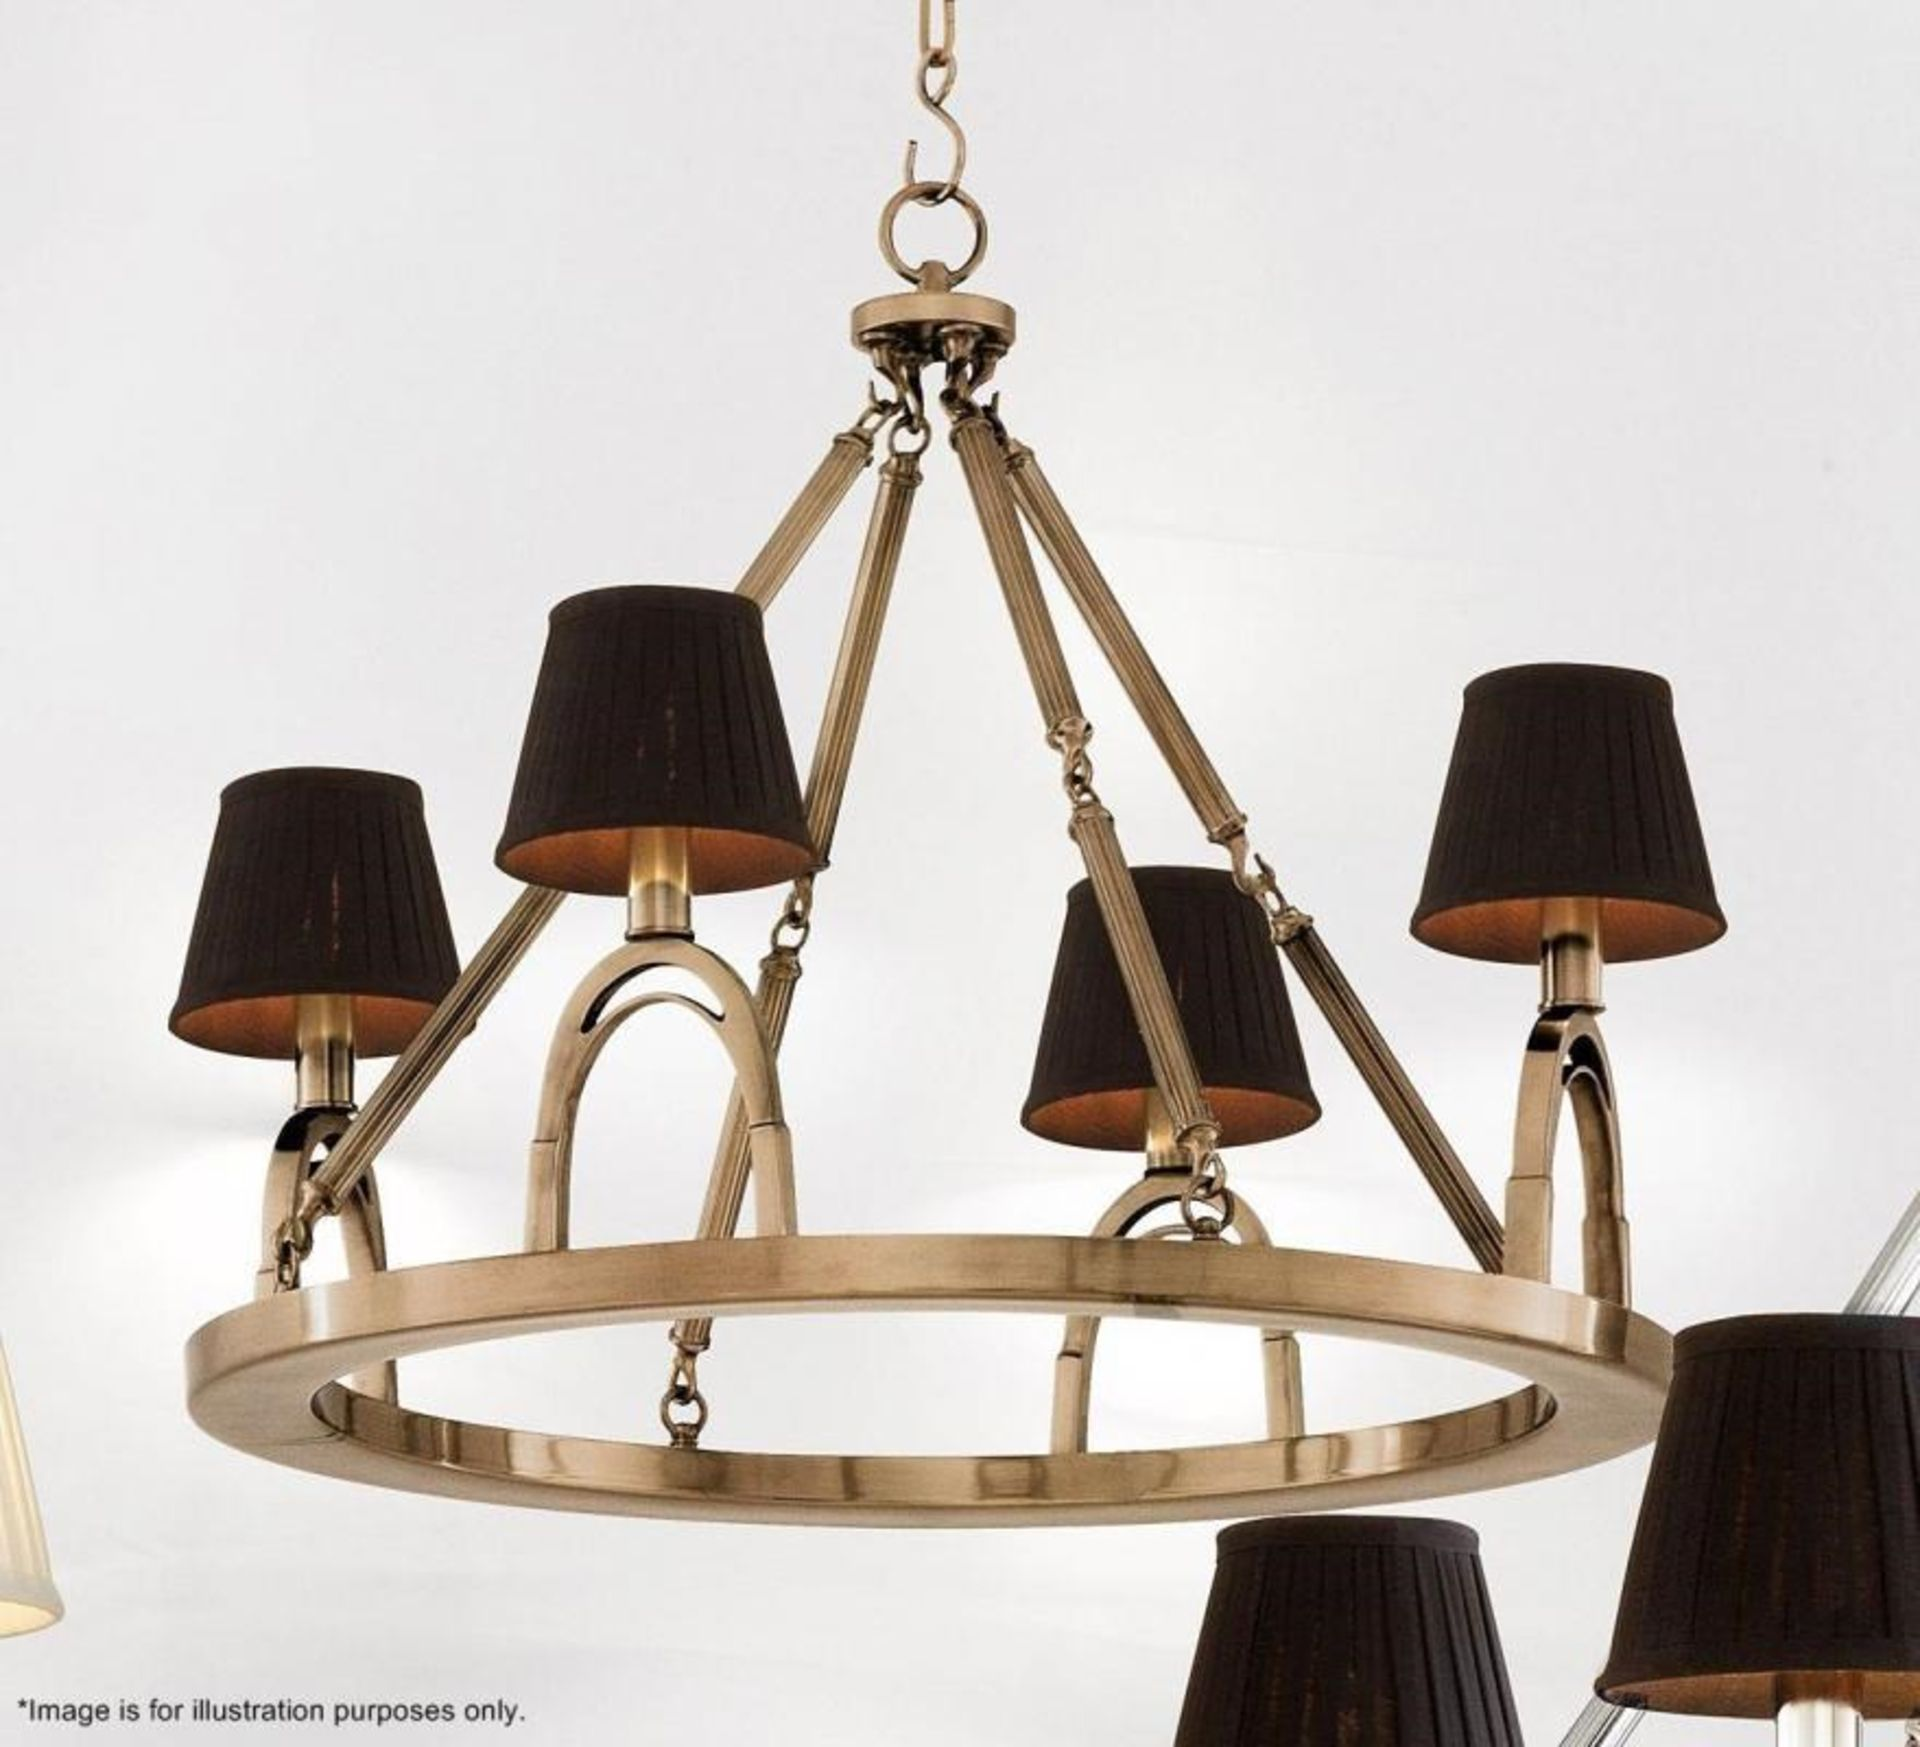 Lot 9225 - 1 x Eichholtz 'Jigger' Equestrian-inspired Chandelier With An Aged Brass Finish - RRP £1,385